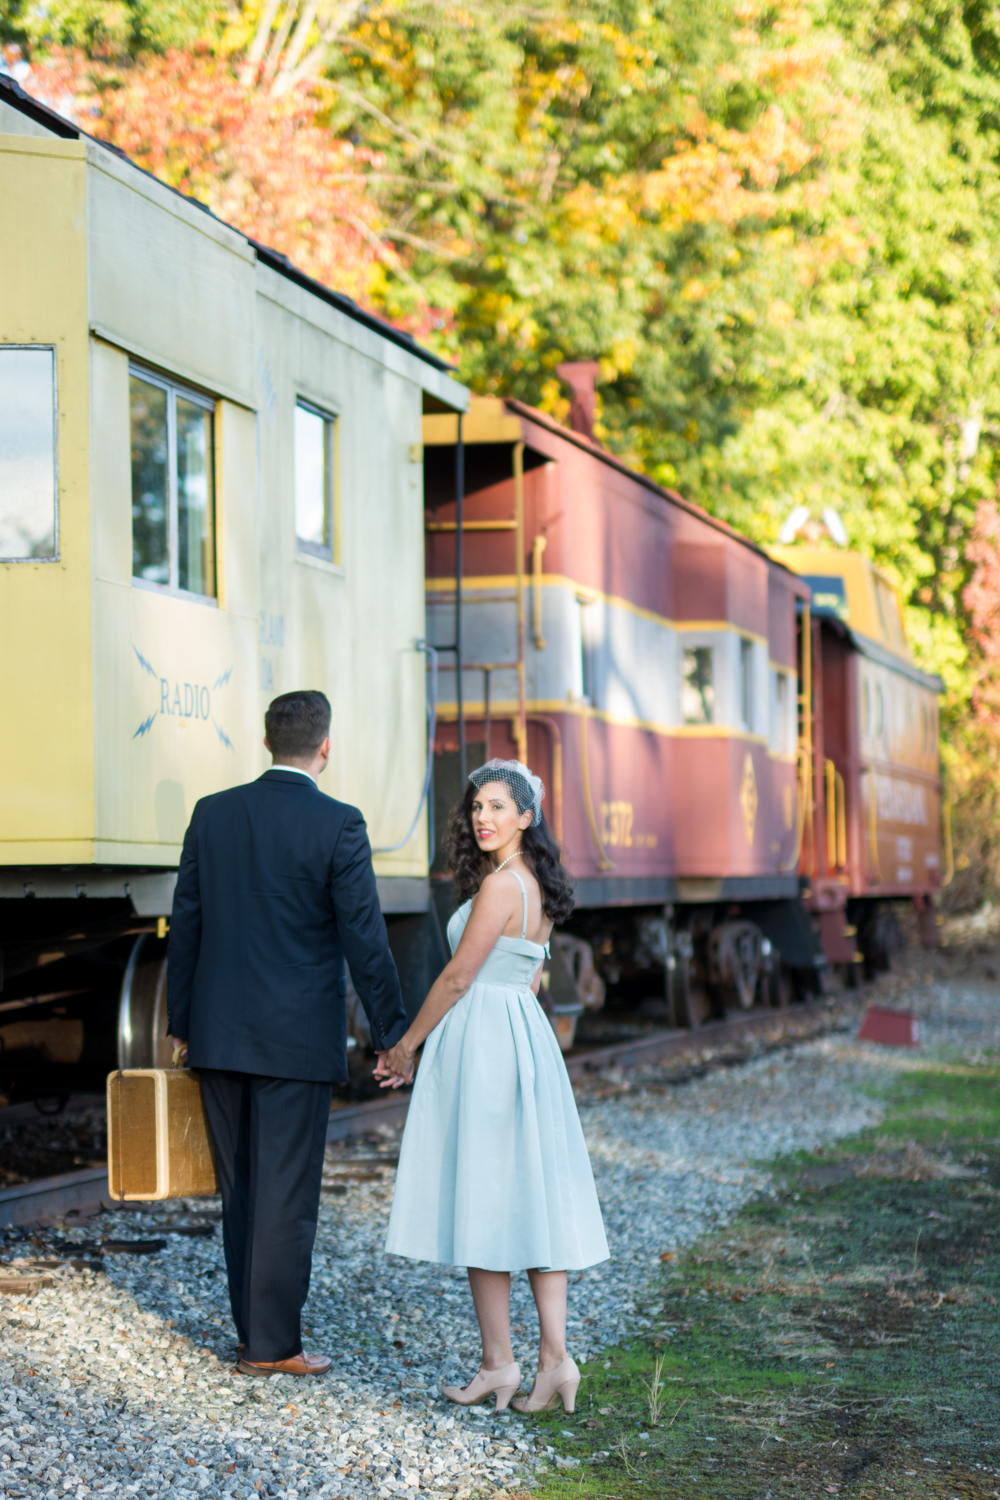 Michelle and Joe- Whippany Railway Musem 1950s Engagement - New Jersey -Olivia Christina Photography-69.jpg